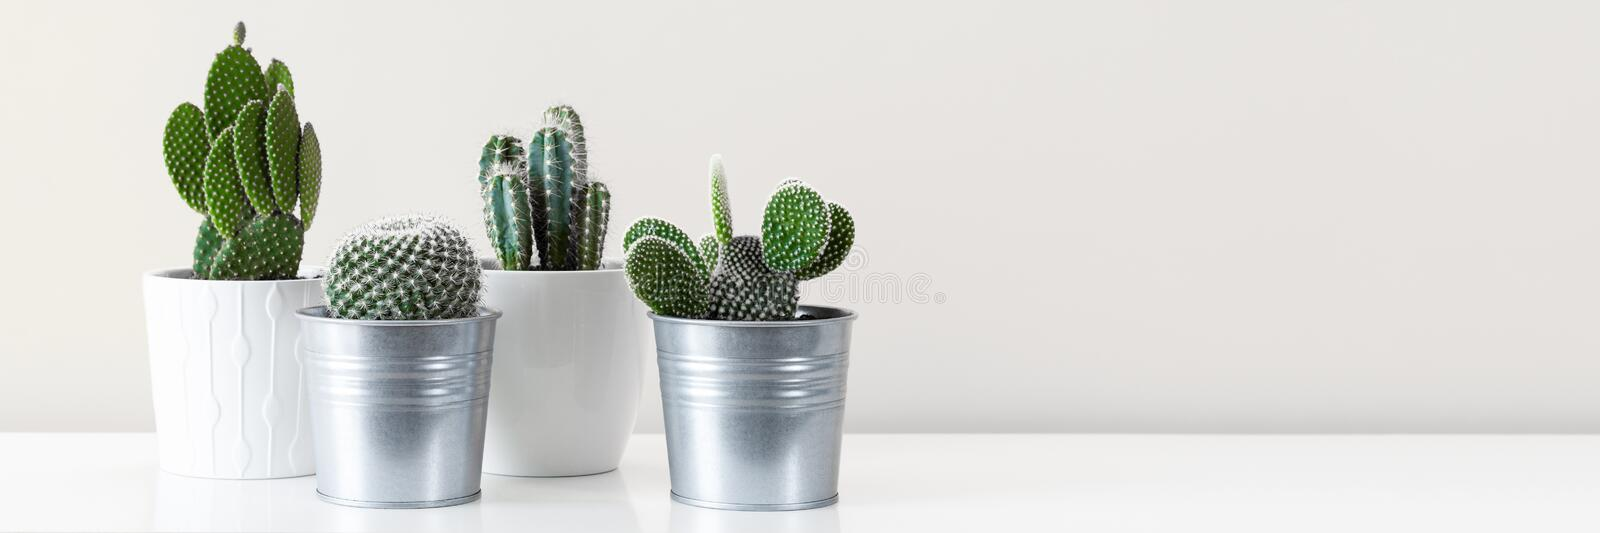 Various cactus house plants in different pots against white wall. Banner with copy space. royalty free stock photos